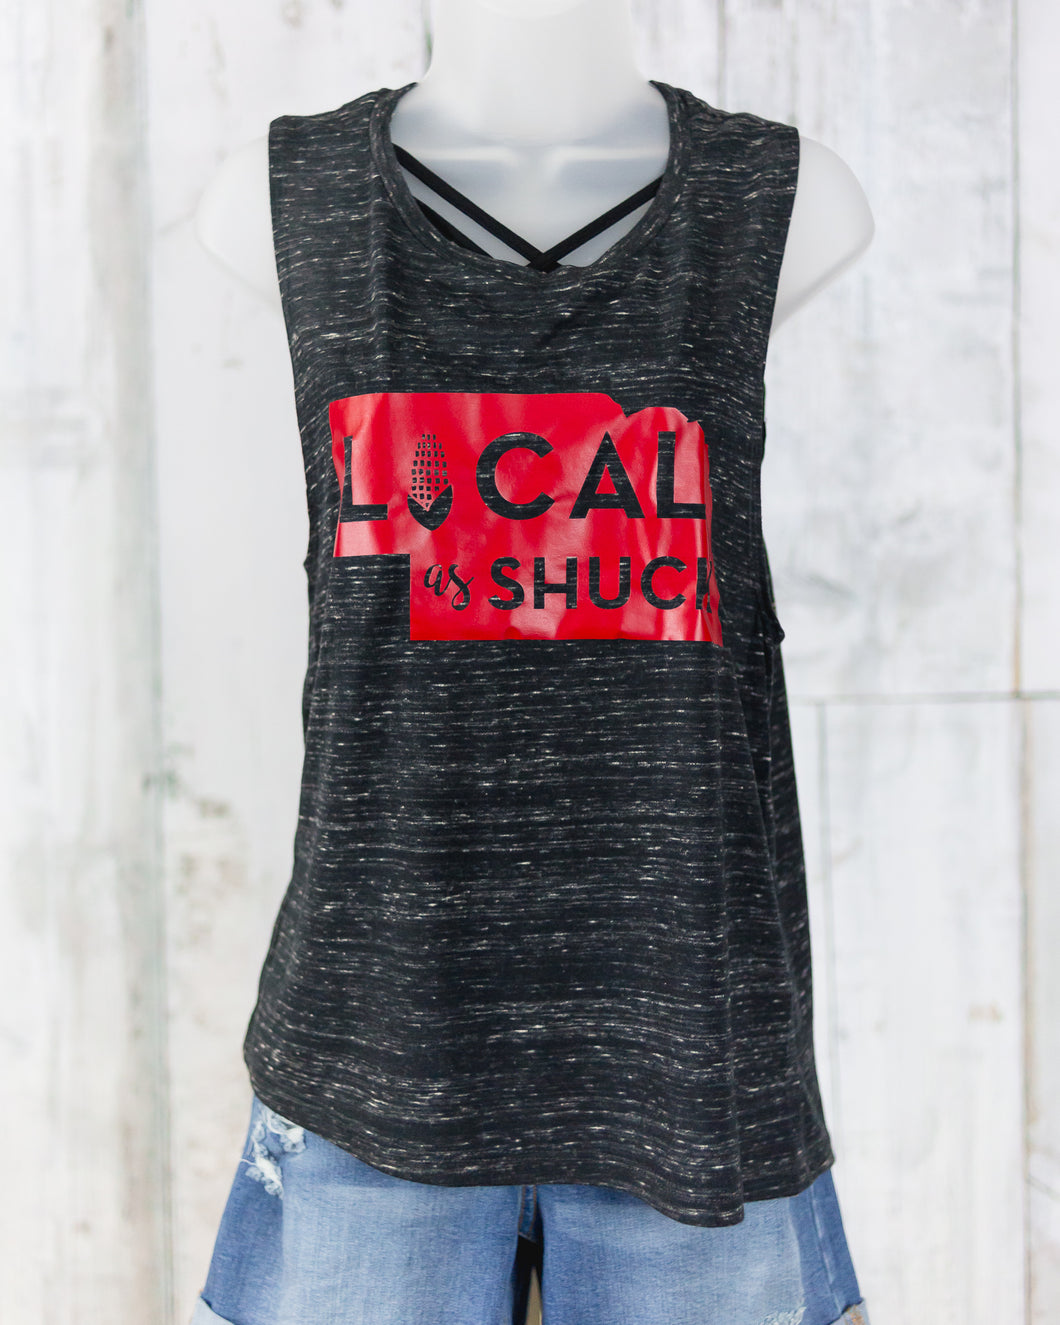 Local as Shuck Graphic Tank